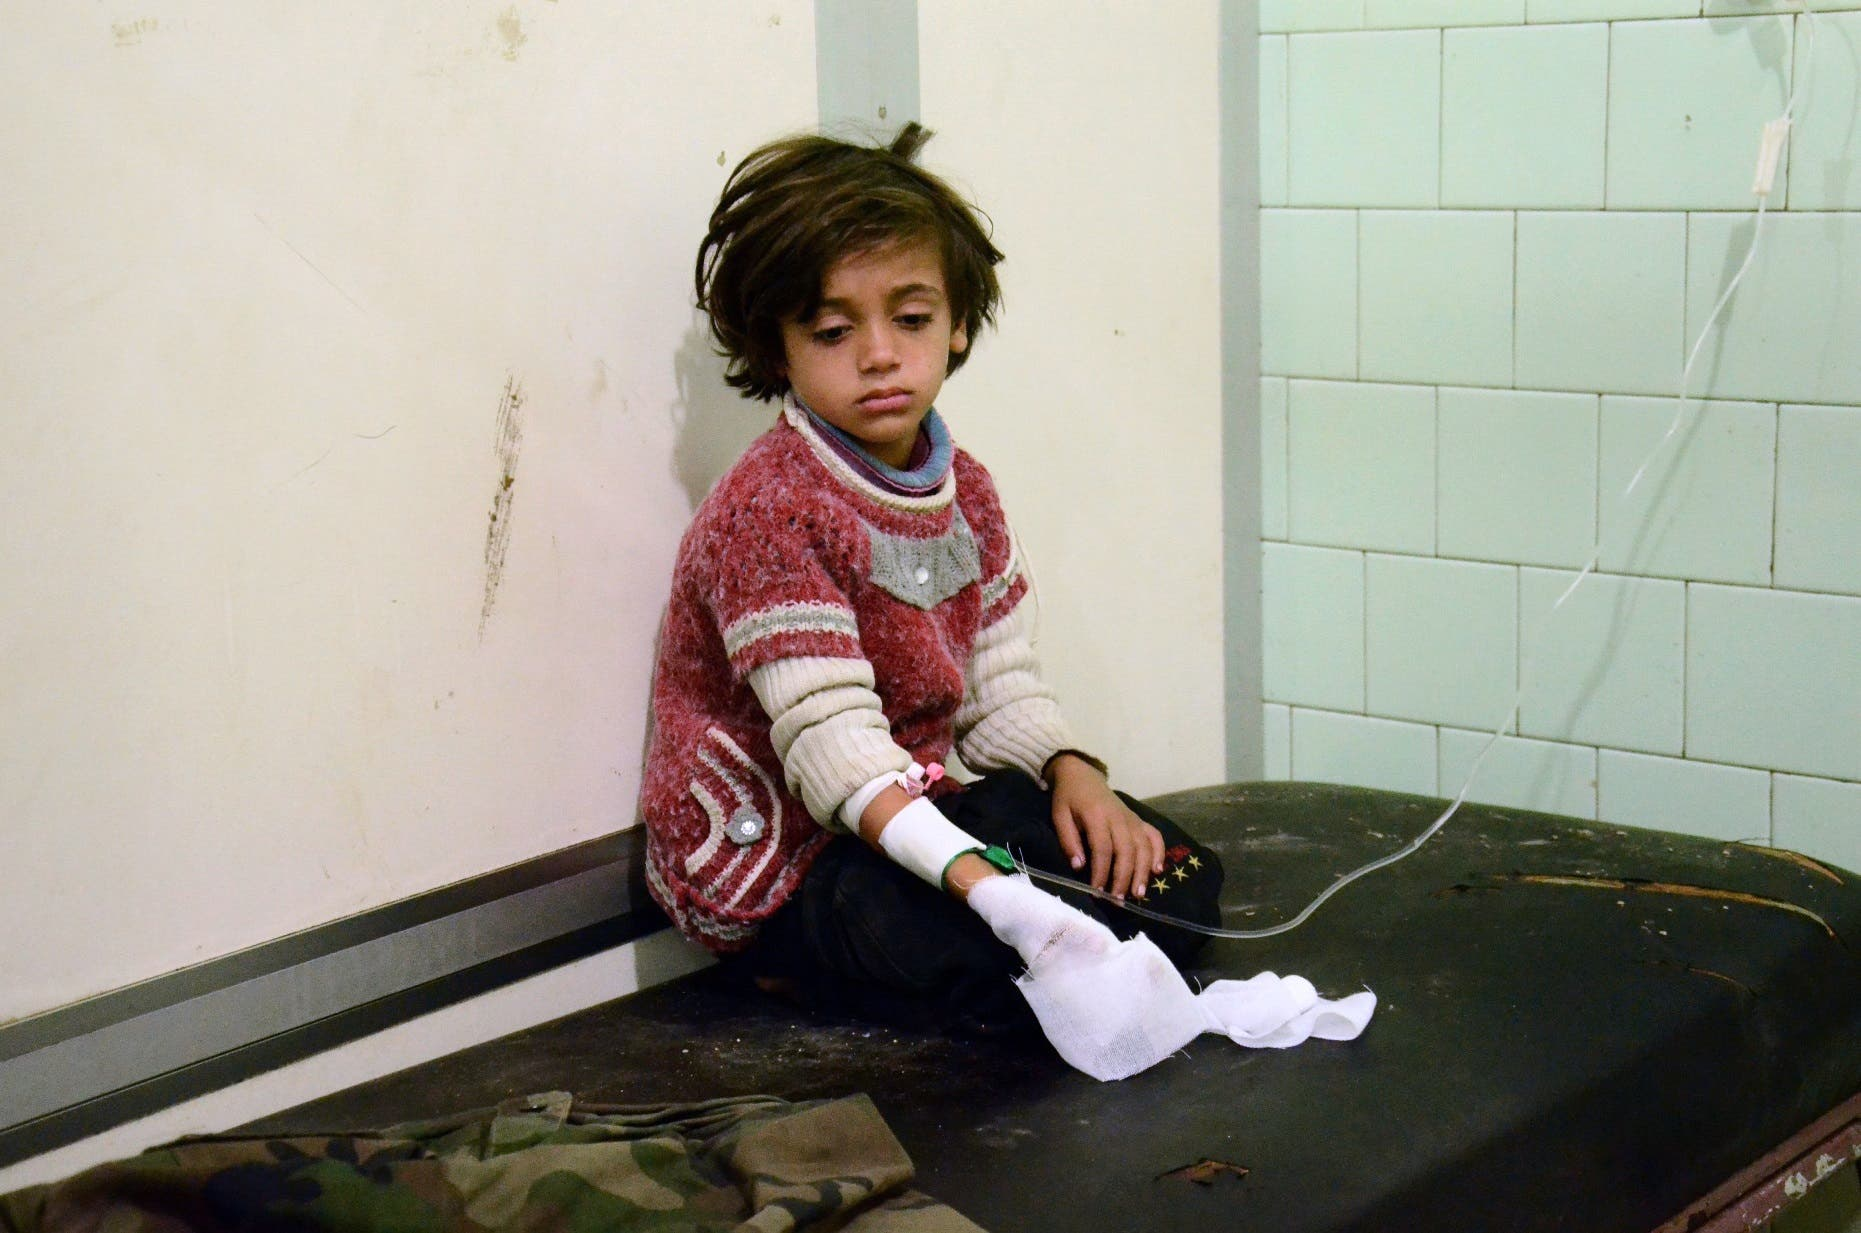 An injured child waits after receiving treatment at the University hospital in a government-held neighbourhood on November 3, 2016 following reported rebel fire on government-held parts of the northern city of Aleppo. Rebel fire on government-held parts of Syria's Aleppo killed 12 civilians and wounded 200, state news agency SANA reported. The Syrian Observatory for Human Rights gave a toll of 11 civilians killed, including four children, and at least 100 people wounded.  GEORGE OURFALIAN / AFP